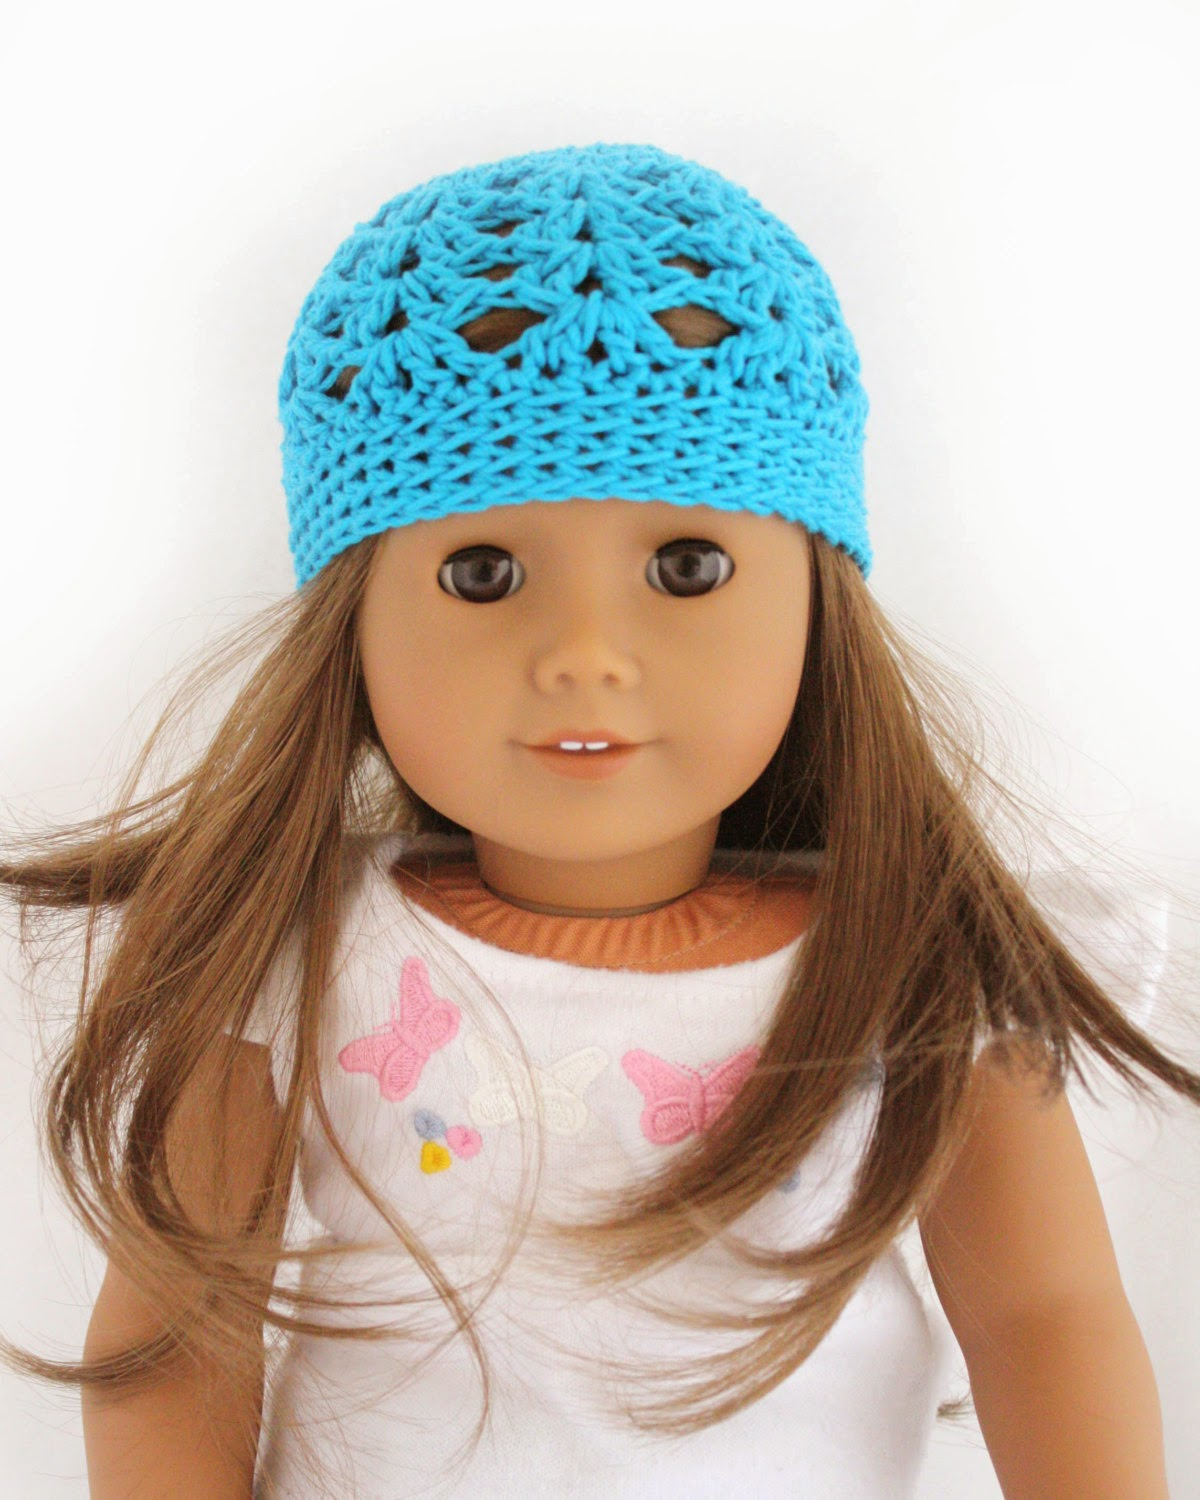 Crochet Hat Pattern American Girl Doll : Little Abbee: TUTORIAL: American Girl Crochet Hat